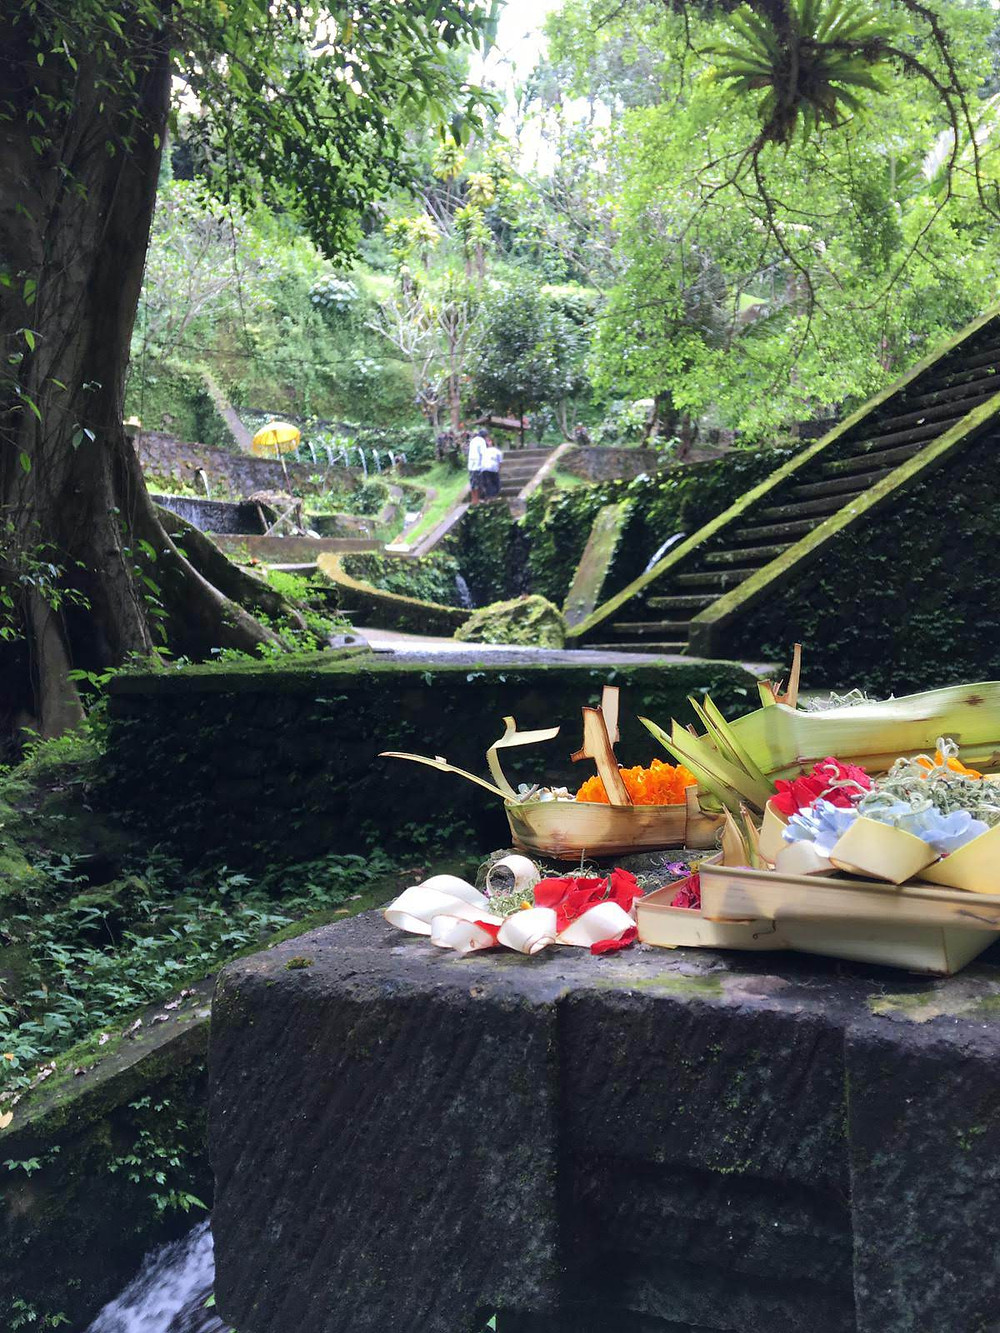 Balinese offering in a temple immerse in nature